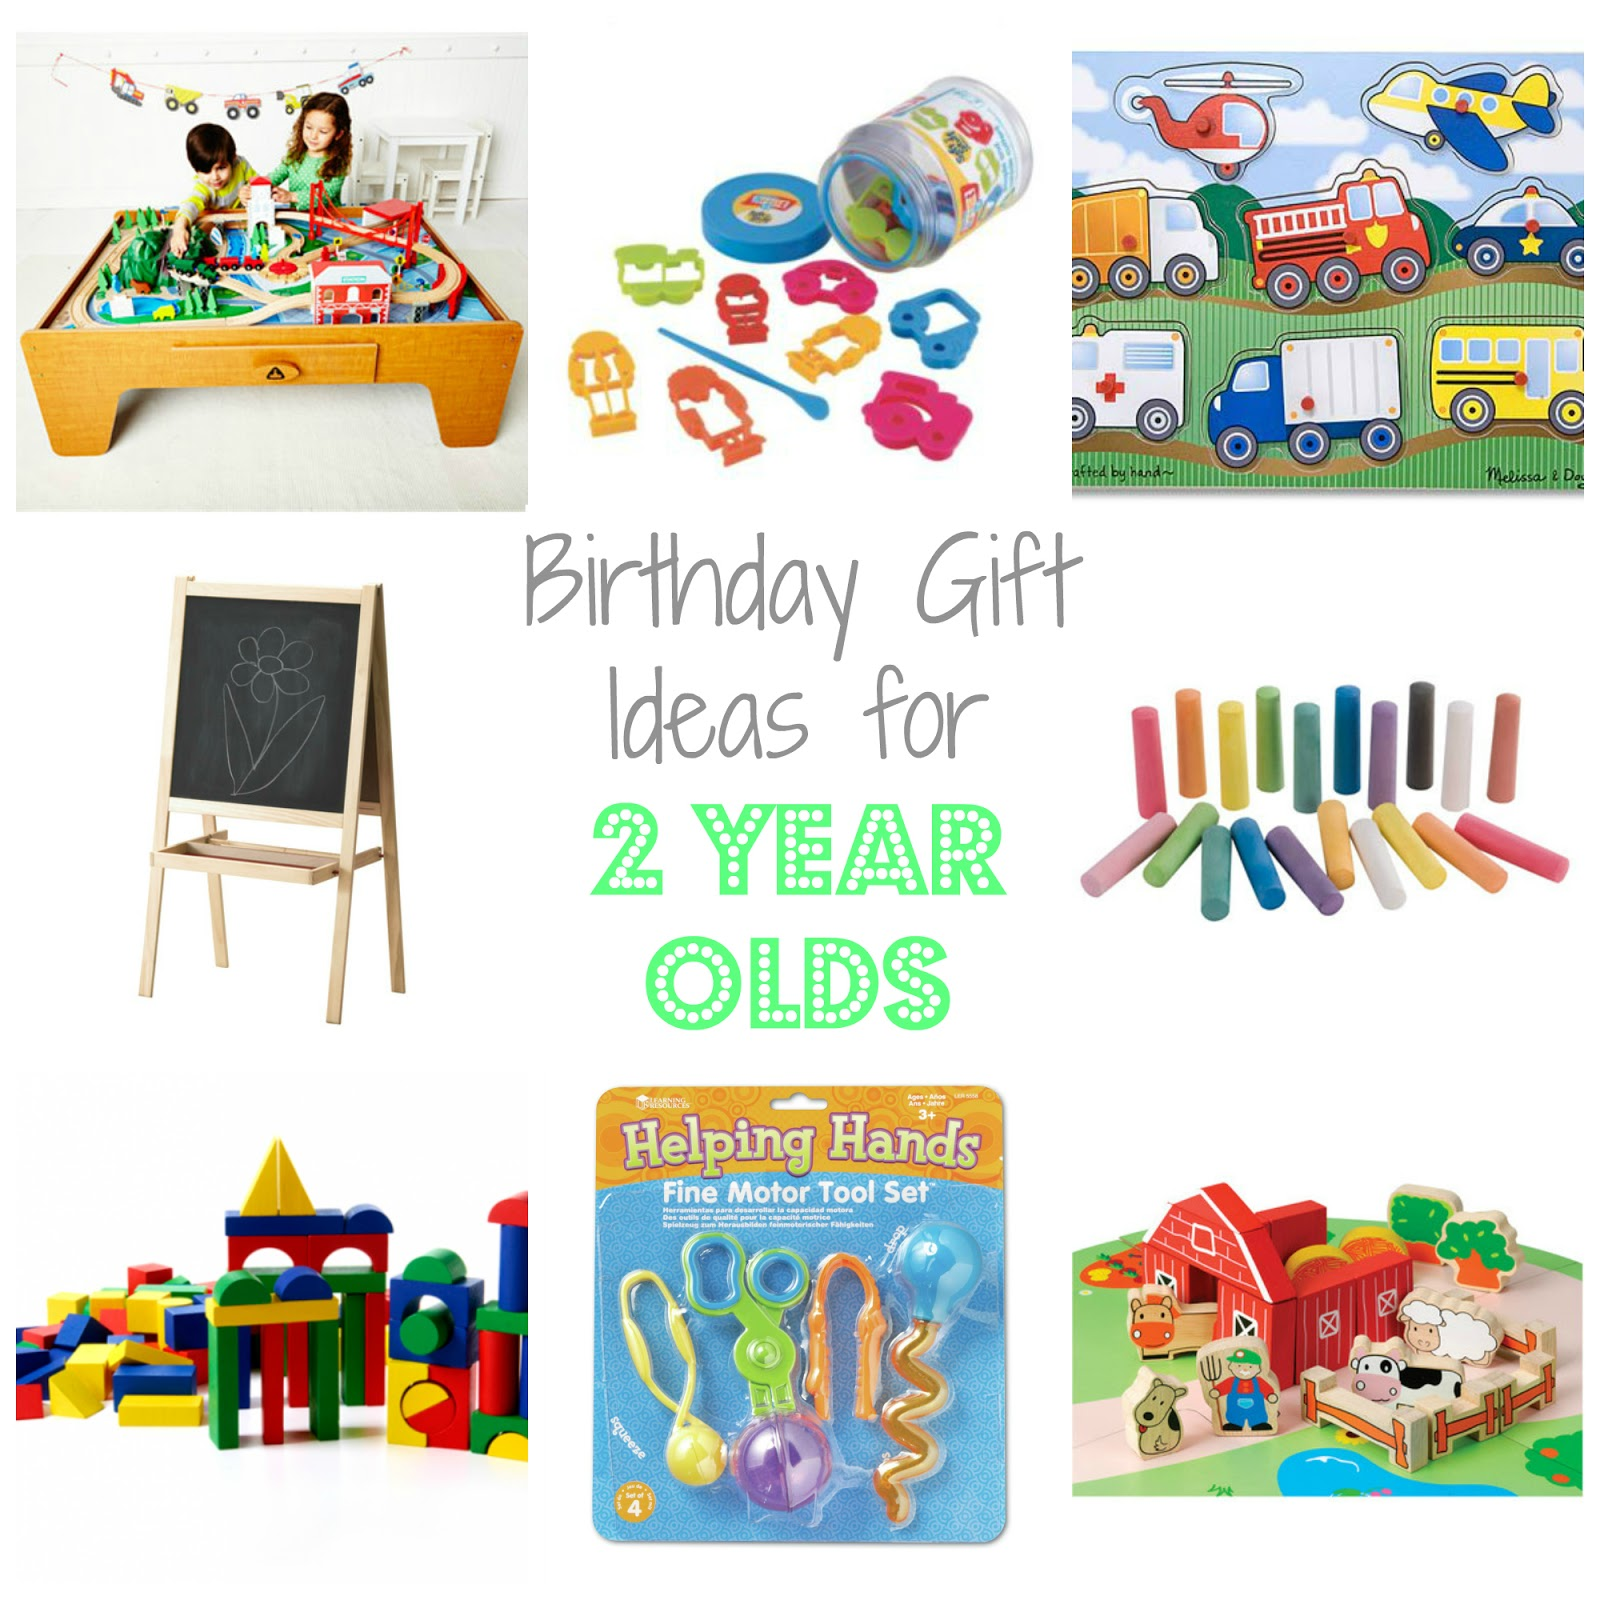 99 2 Year Old Birthday Gifts Ideas